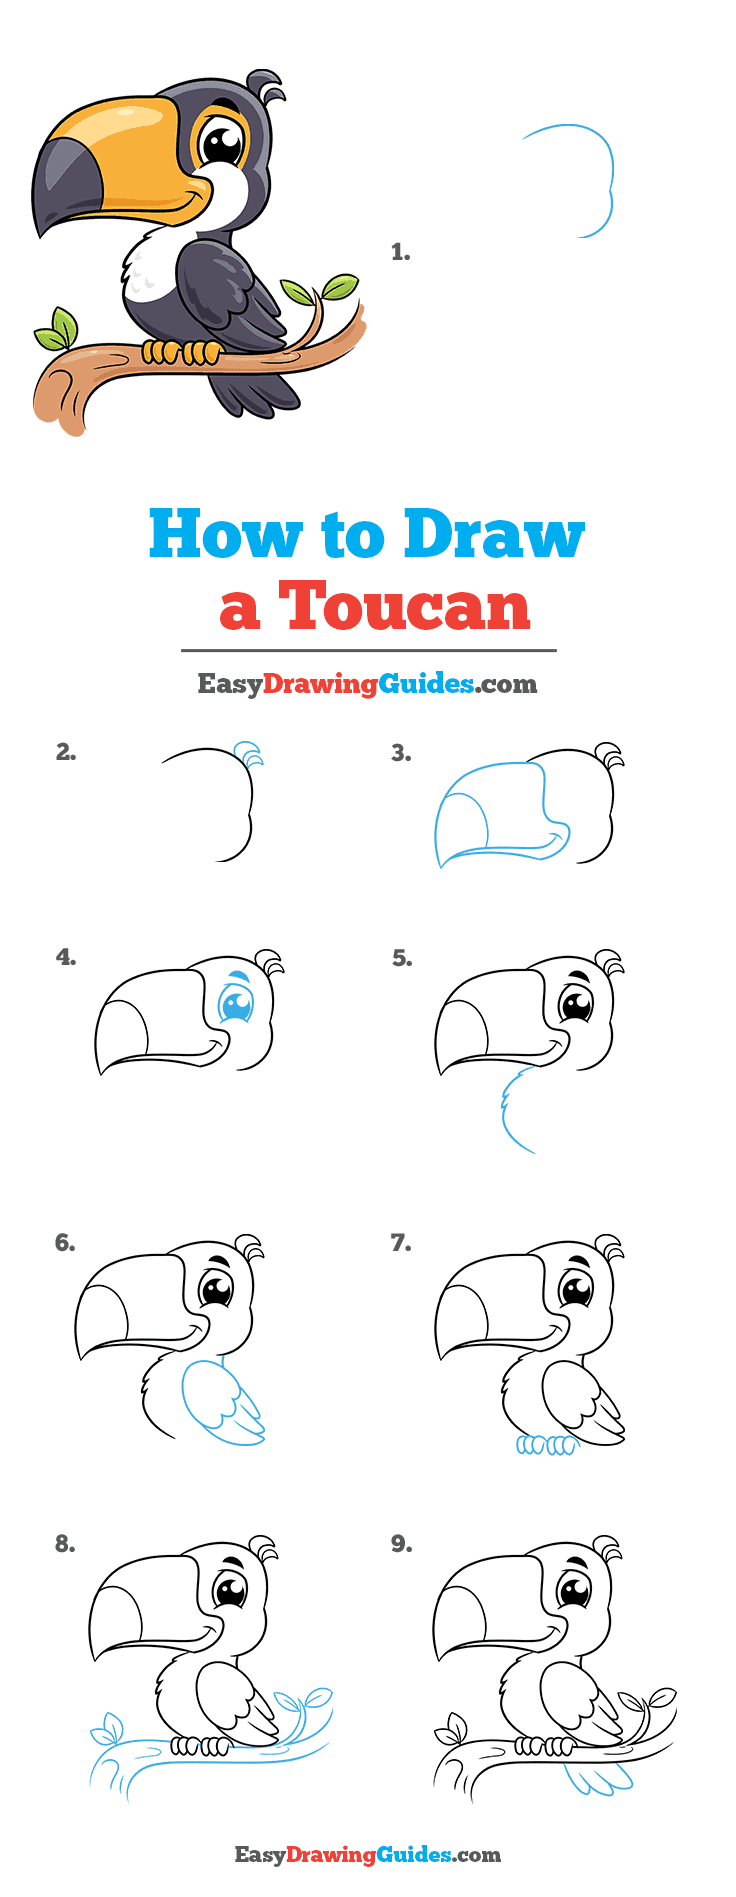 How to Draw Toucan